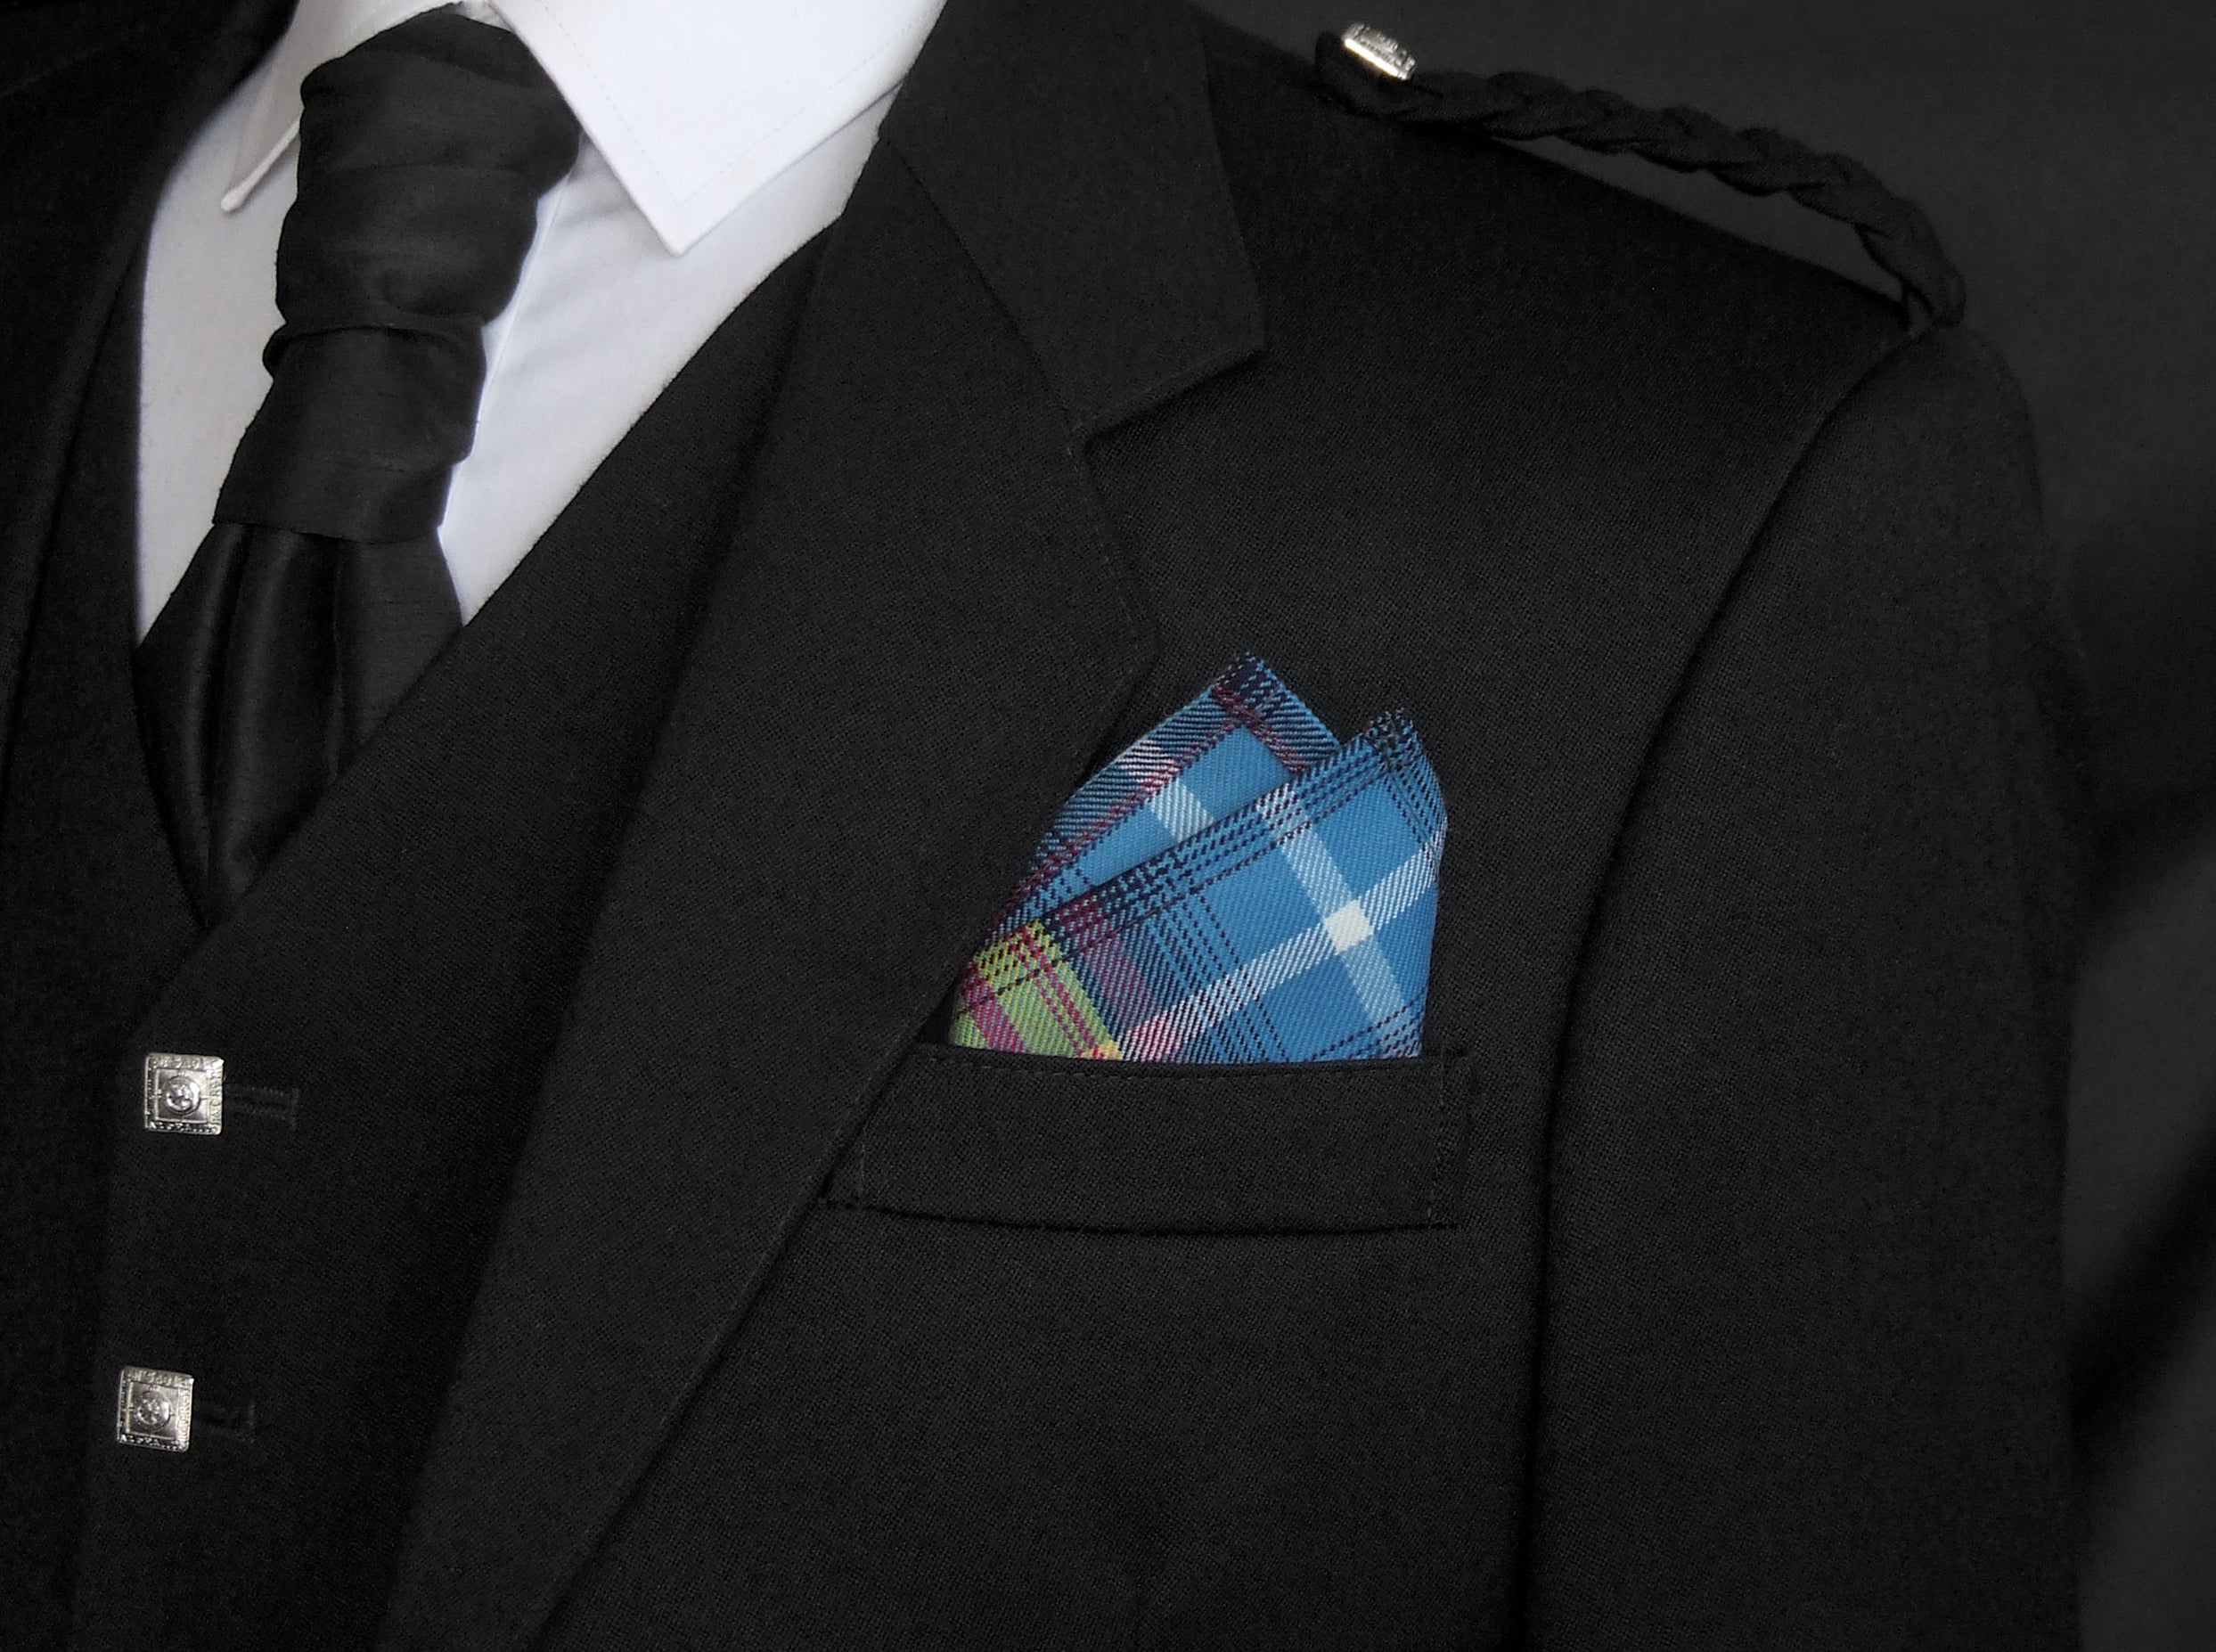 The Declaration tartan pocket square with Saltire design